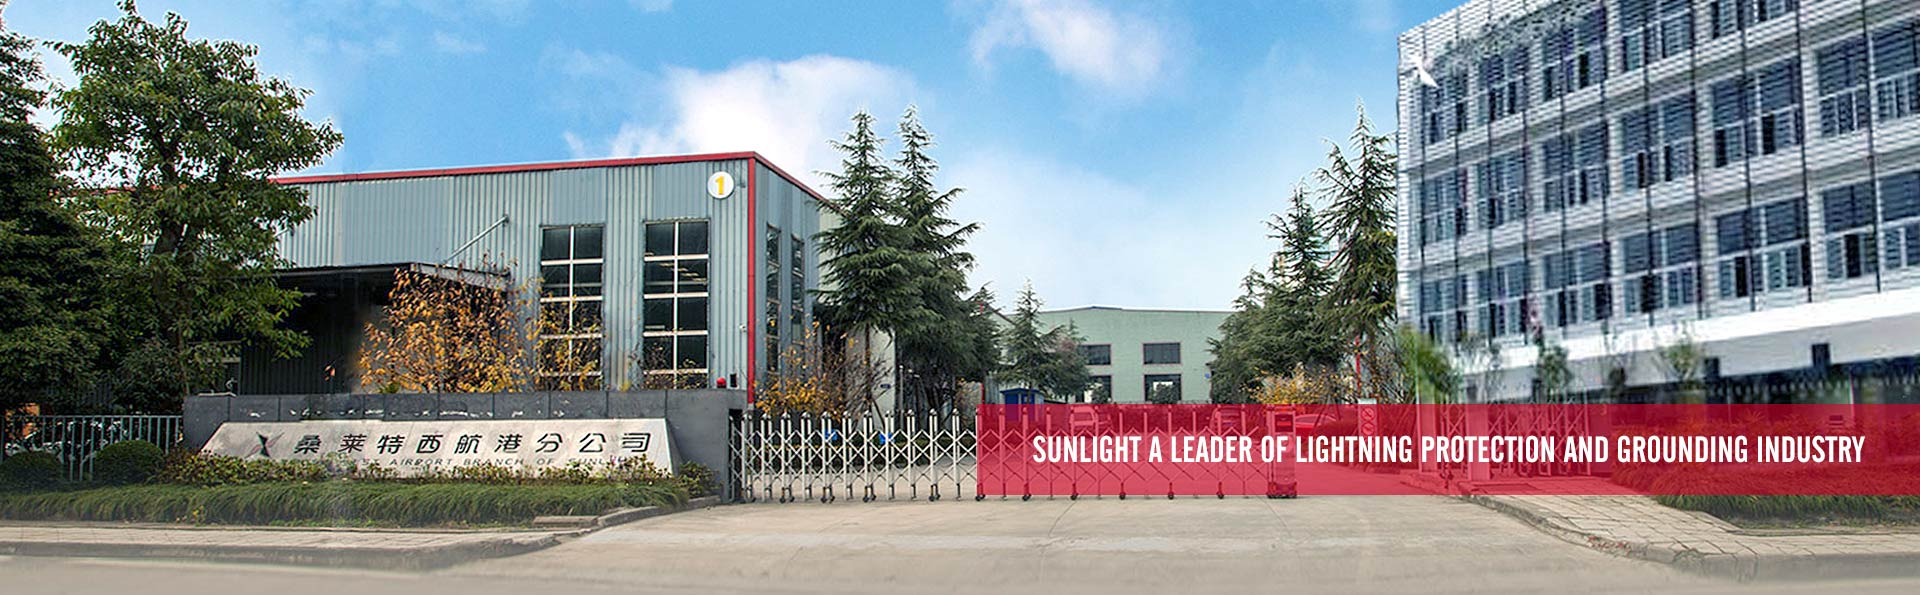 SUNLIGHT A LEADER OF LIGHNING PROTECTION AND GROUNDING INDUSTRY